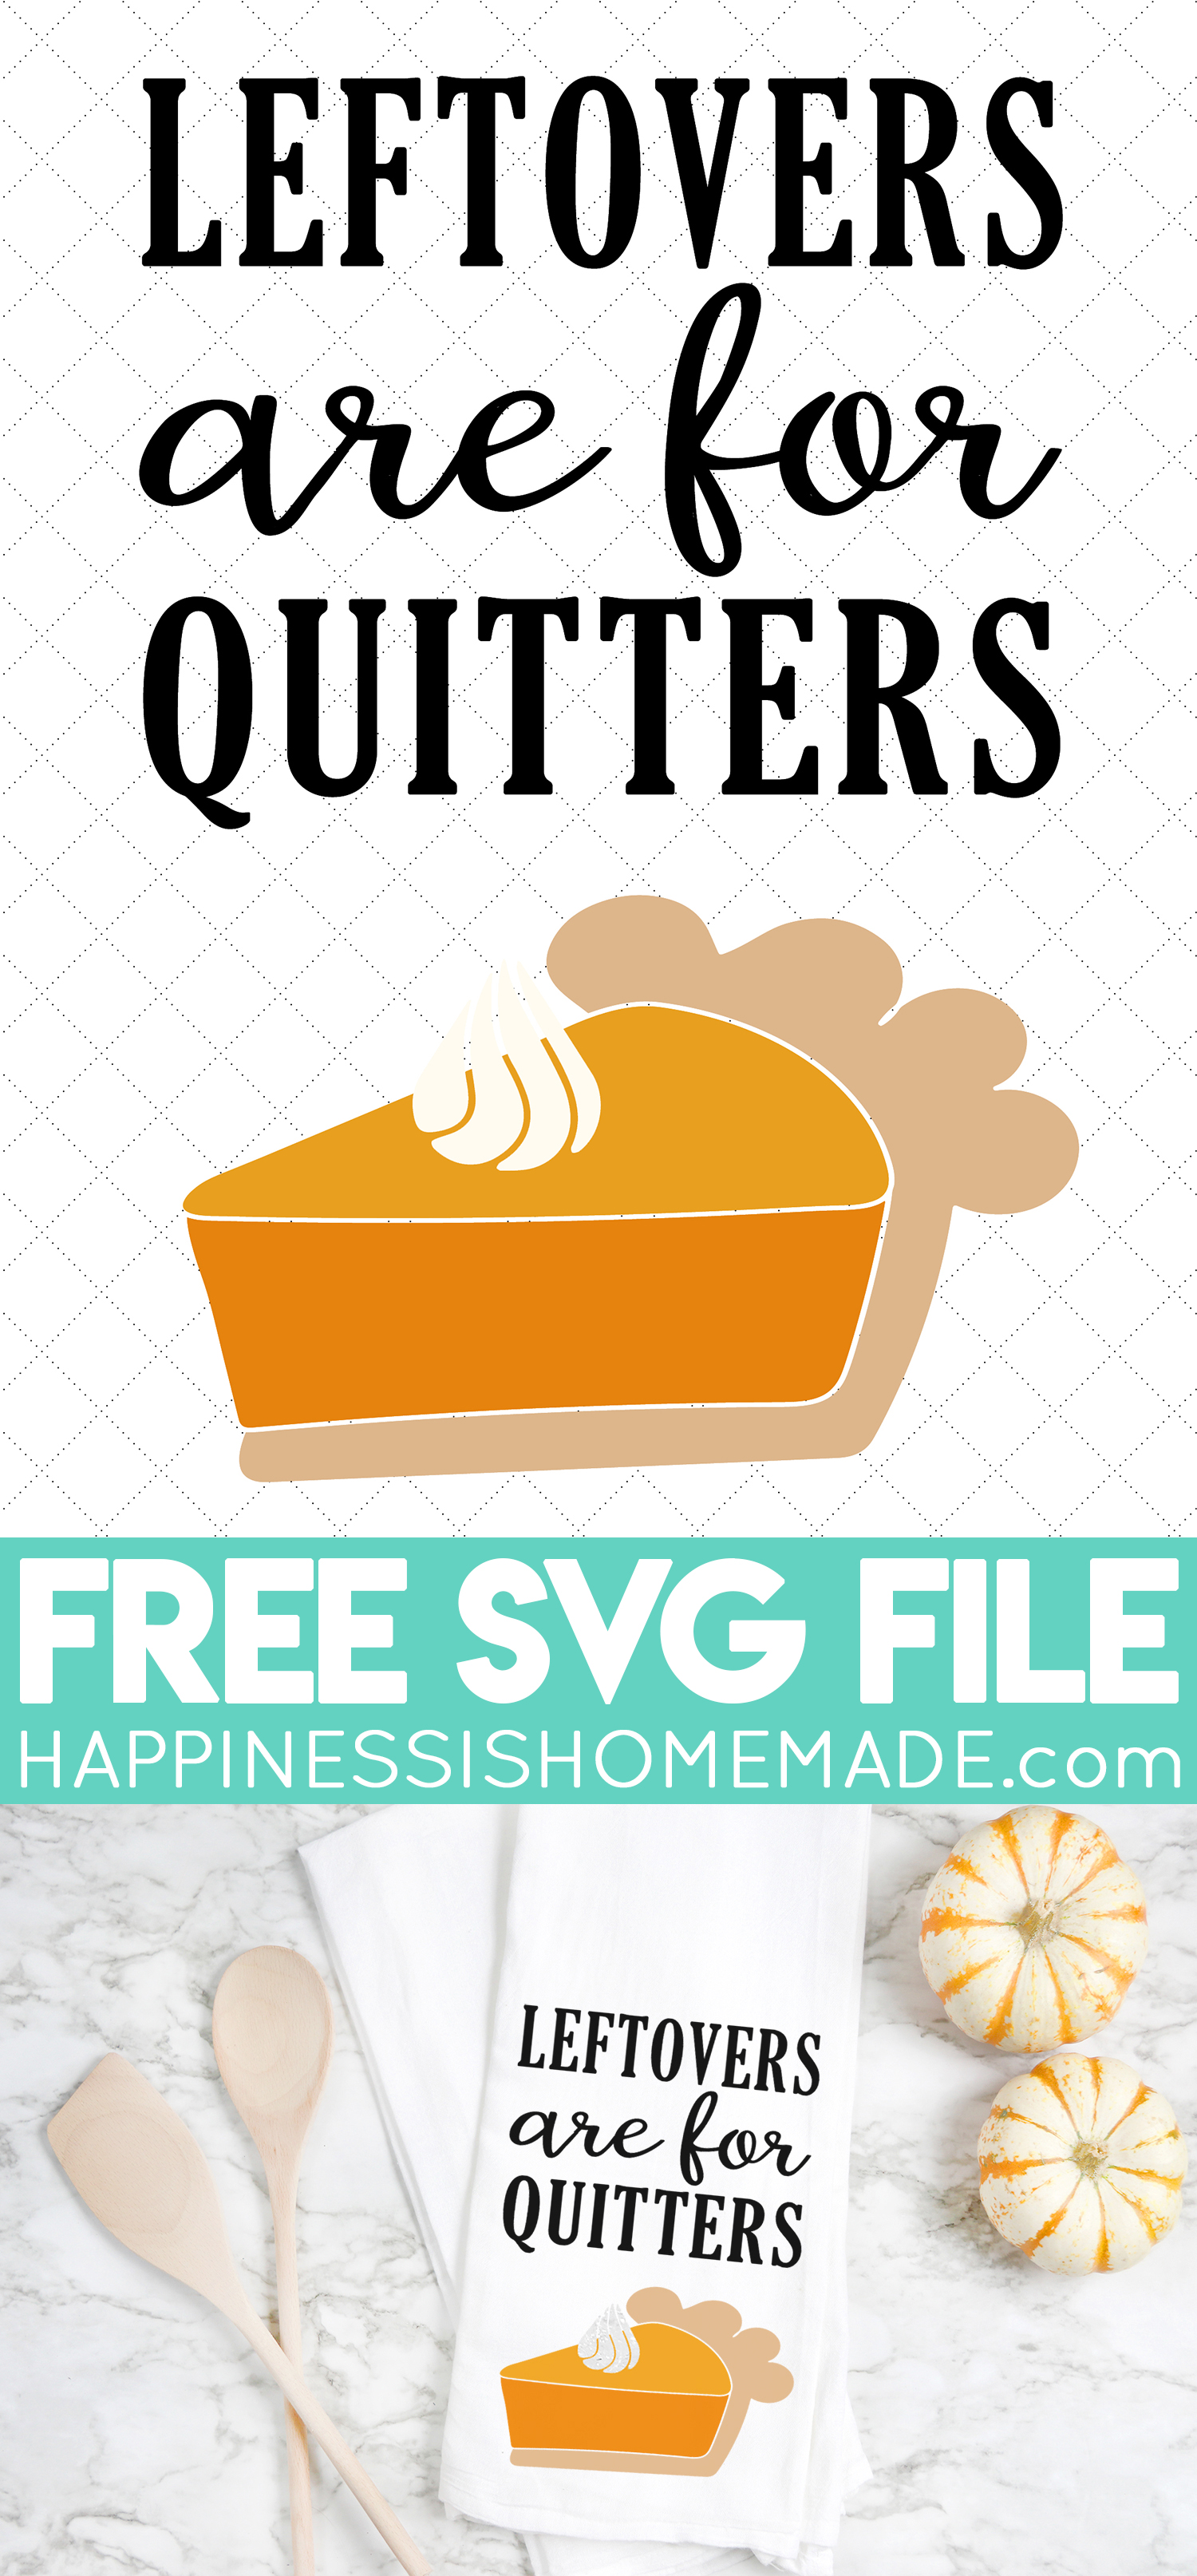 Free Thanksgiving SVG - Leftovers are for Quitters with this funny and FREE Thanksgiving SVG file! Make your own shirts, tea towels, signs, and more! Easy DIY Thanksgiving decorations!